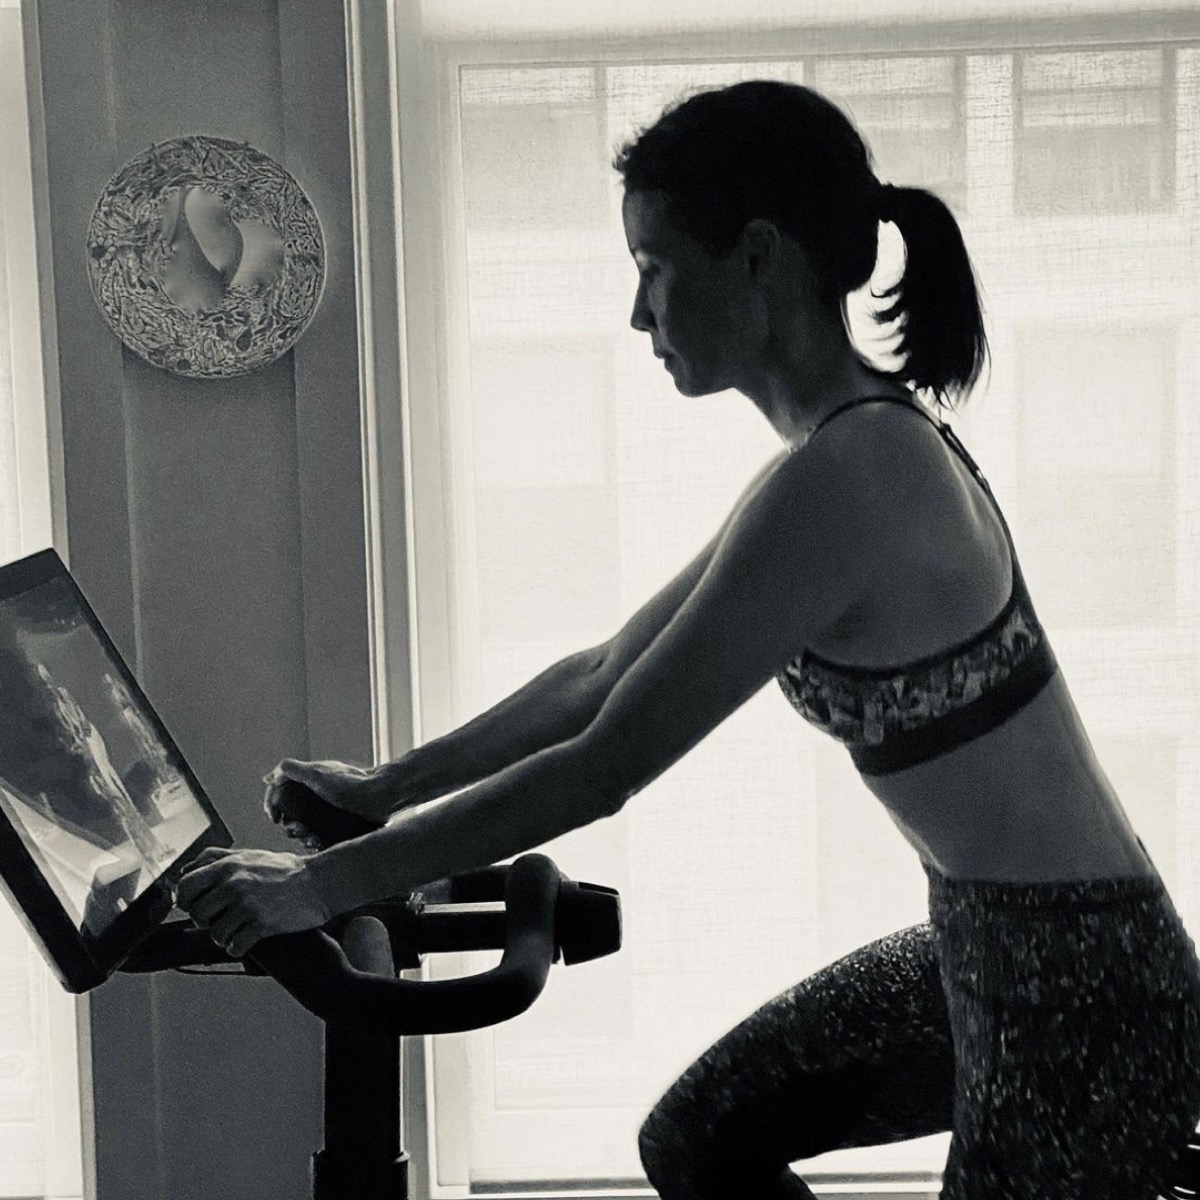 lucy liu in black and white photo on soulcycle or variis bike